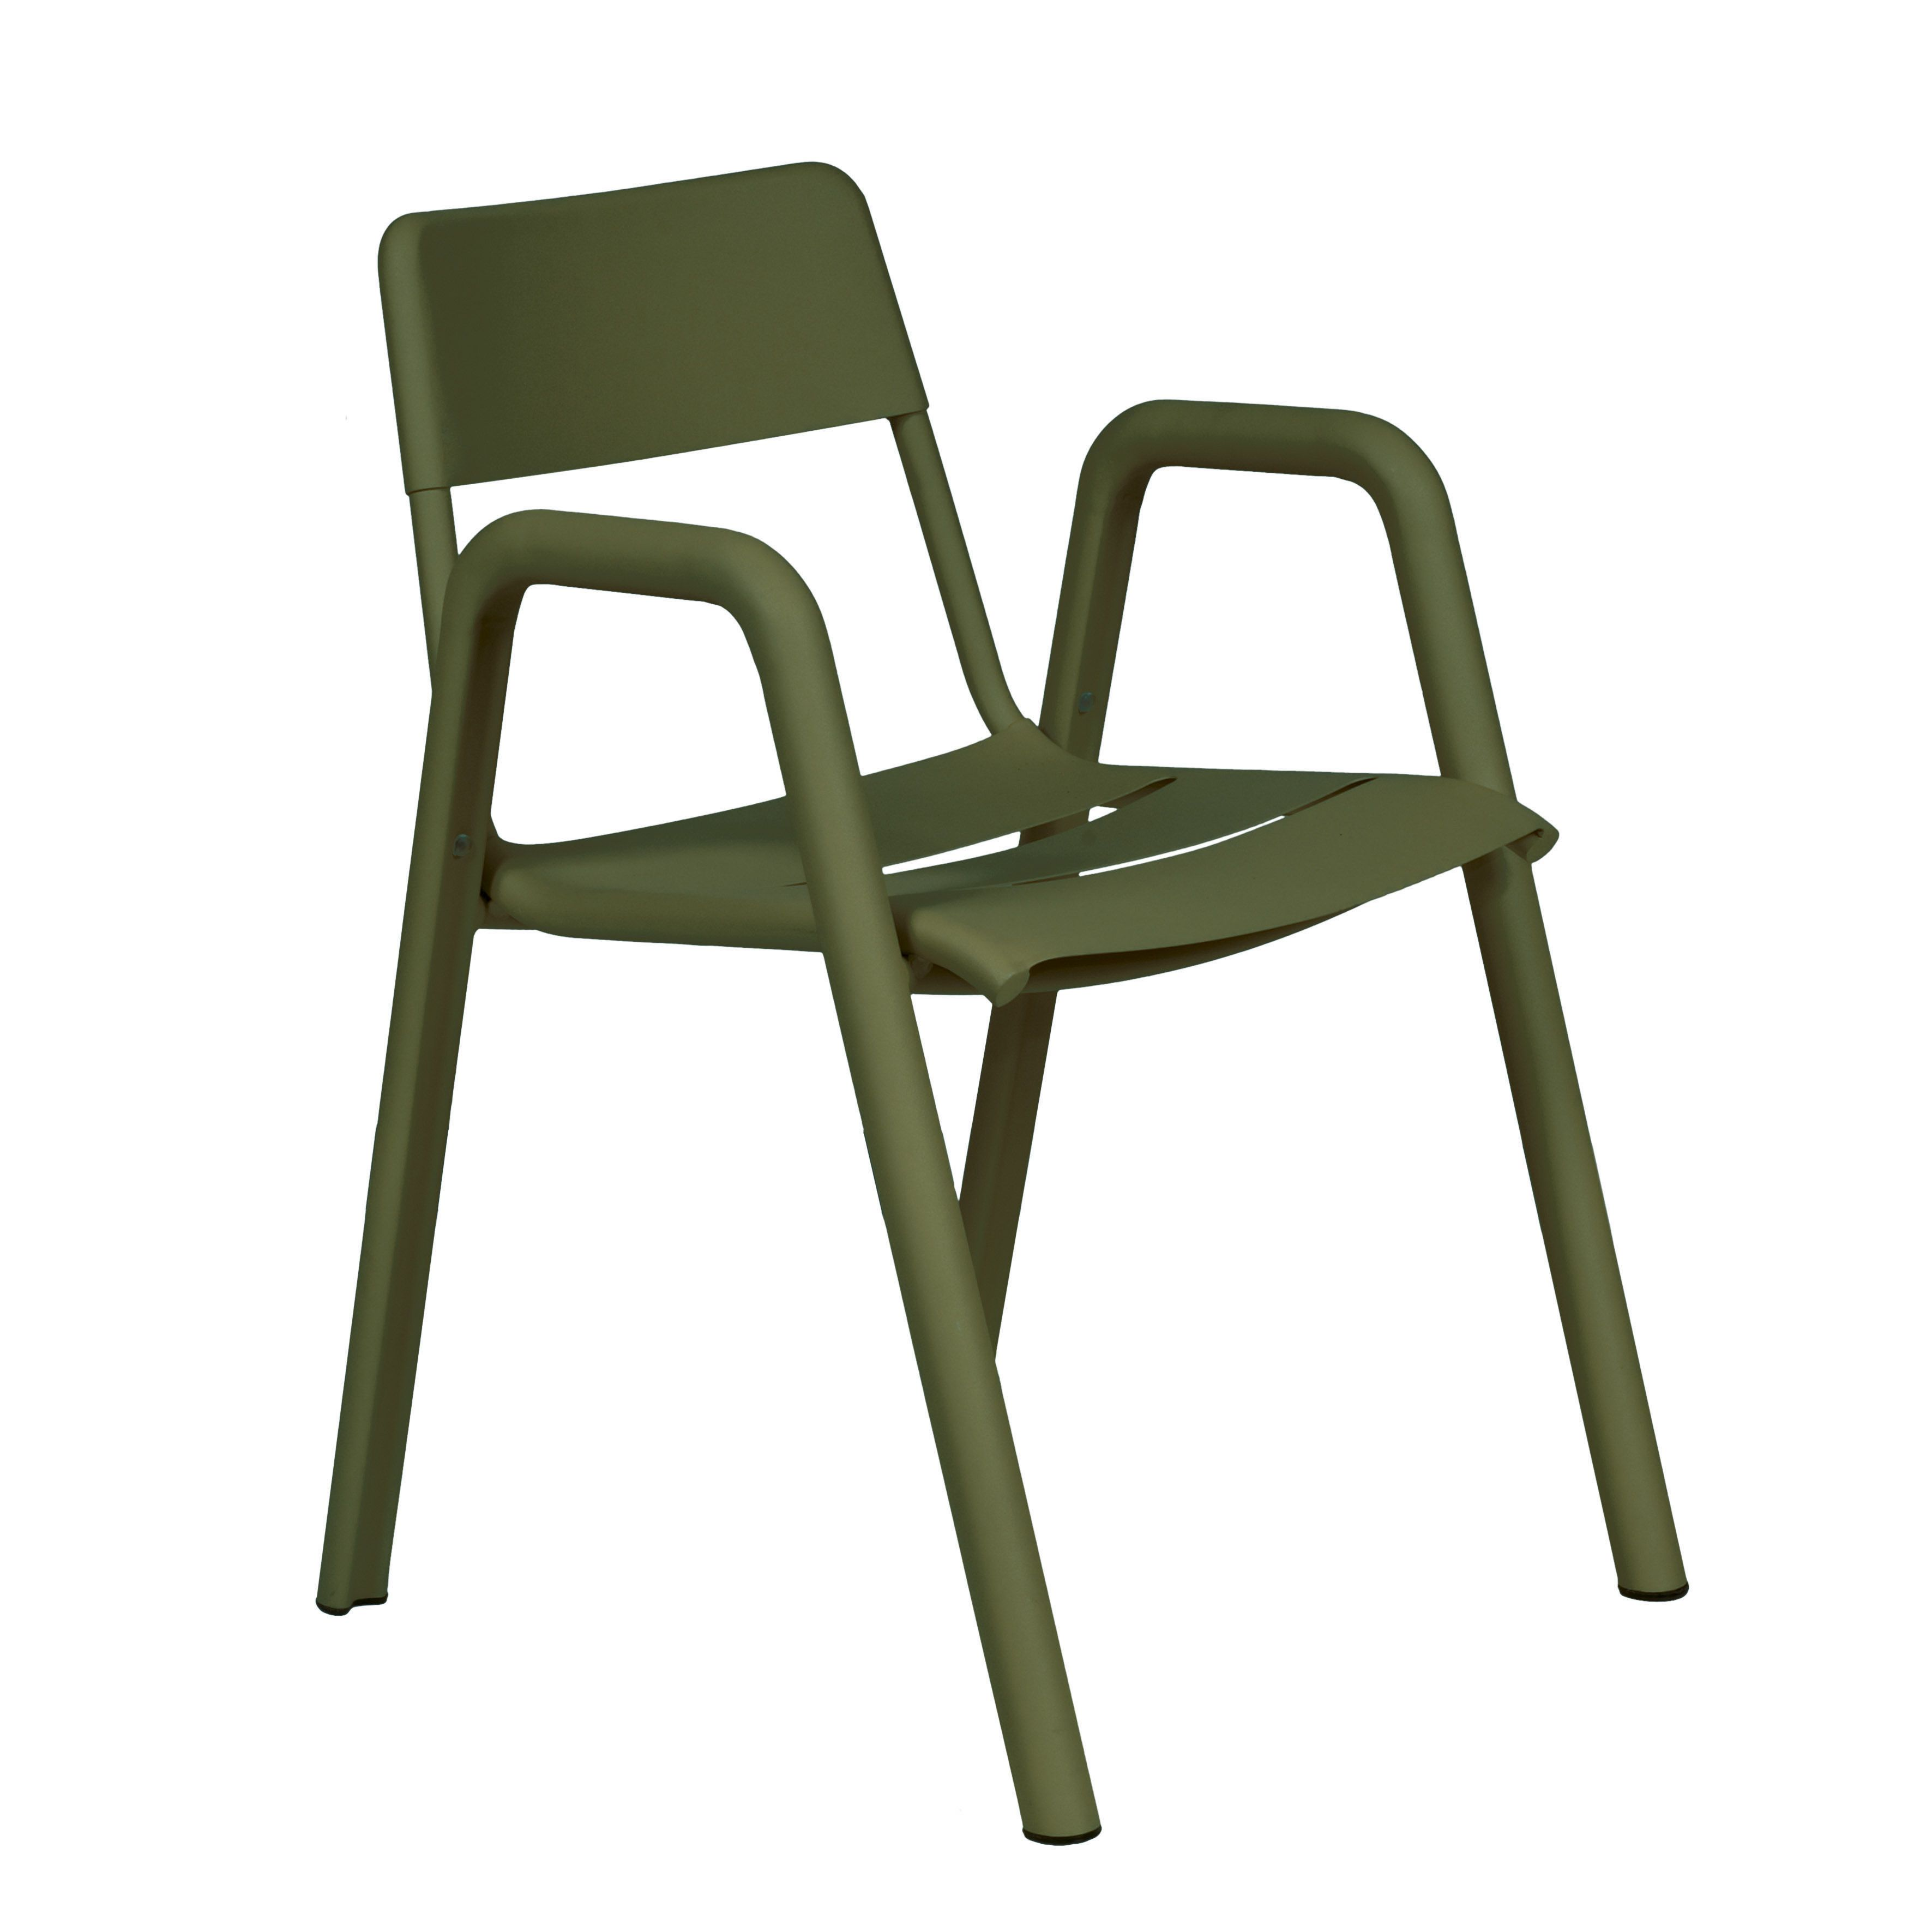 Fauteuil empilable \